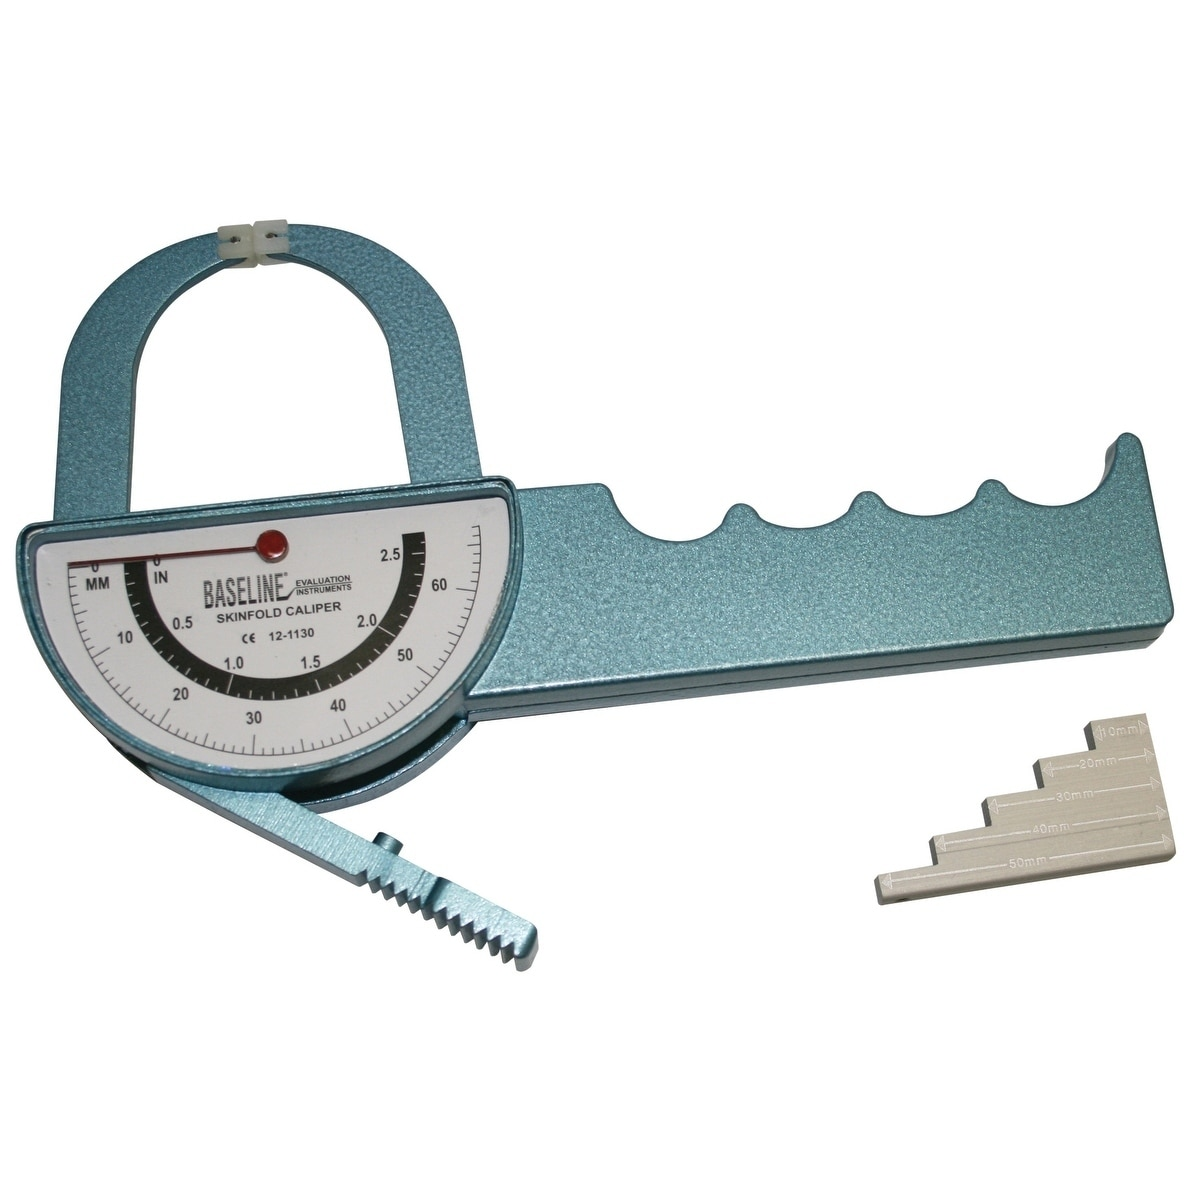 Baseline 2-Sided Medical Skinfold Caliper w/Case, Silver ...